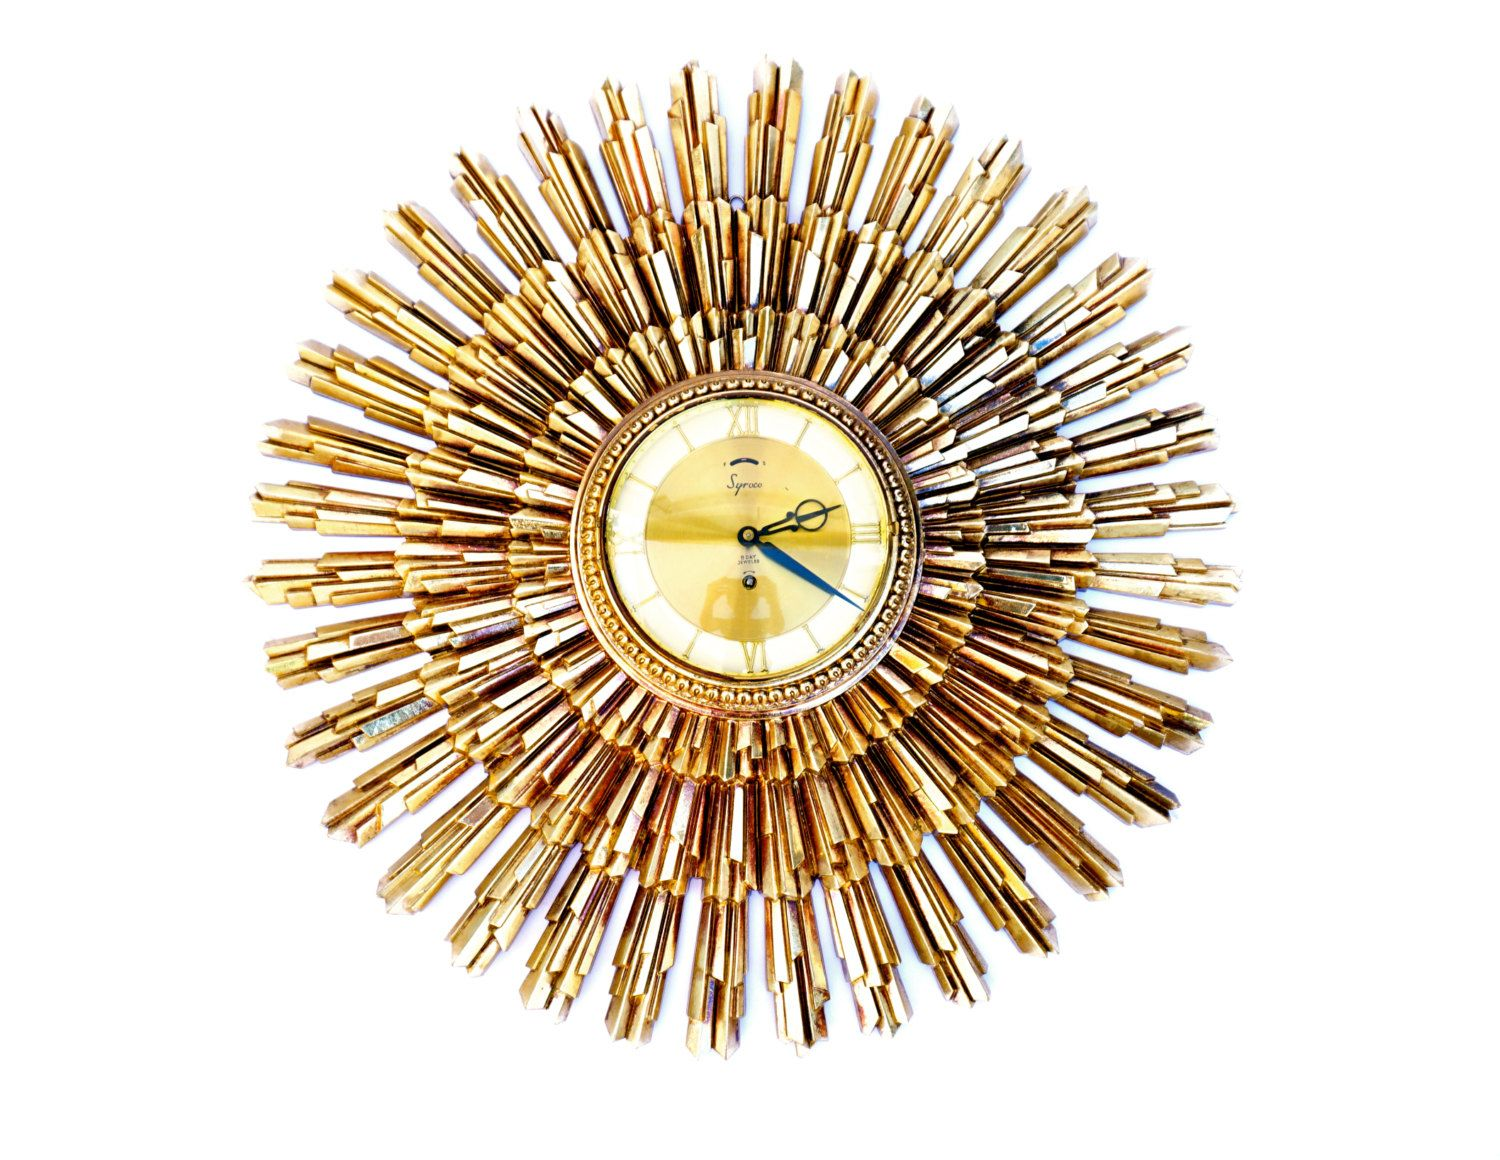 Mid Century Modern Starburst Wall Clock Large Gold E Age Statement Decor Retro Hollywood Regency Syrocowood By Electricmarigold On Etsy